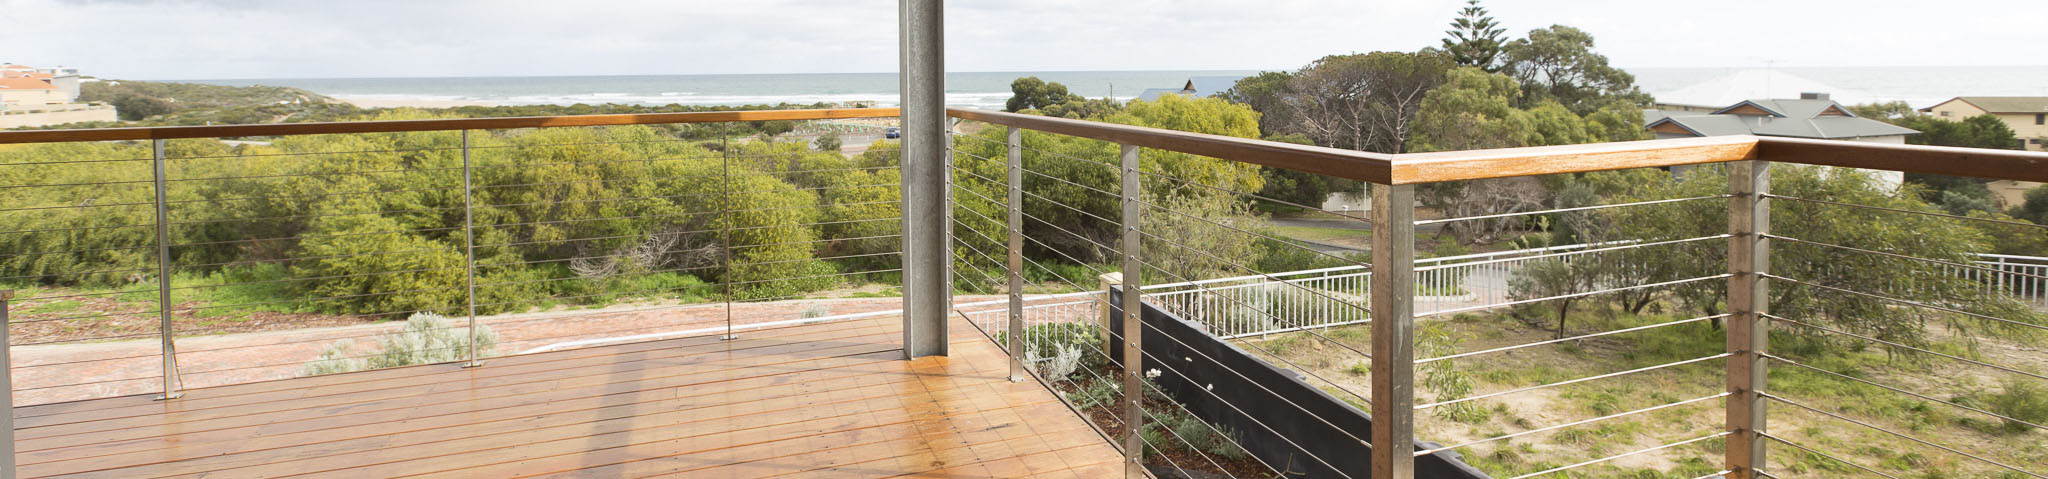 Balustrade Wire with View.jpg